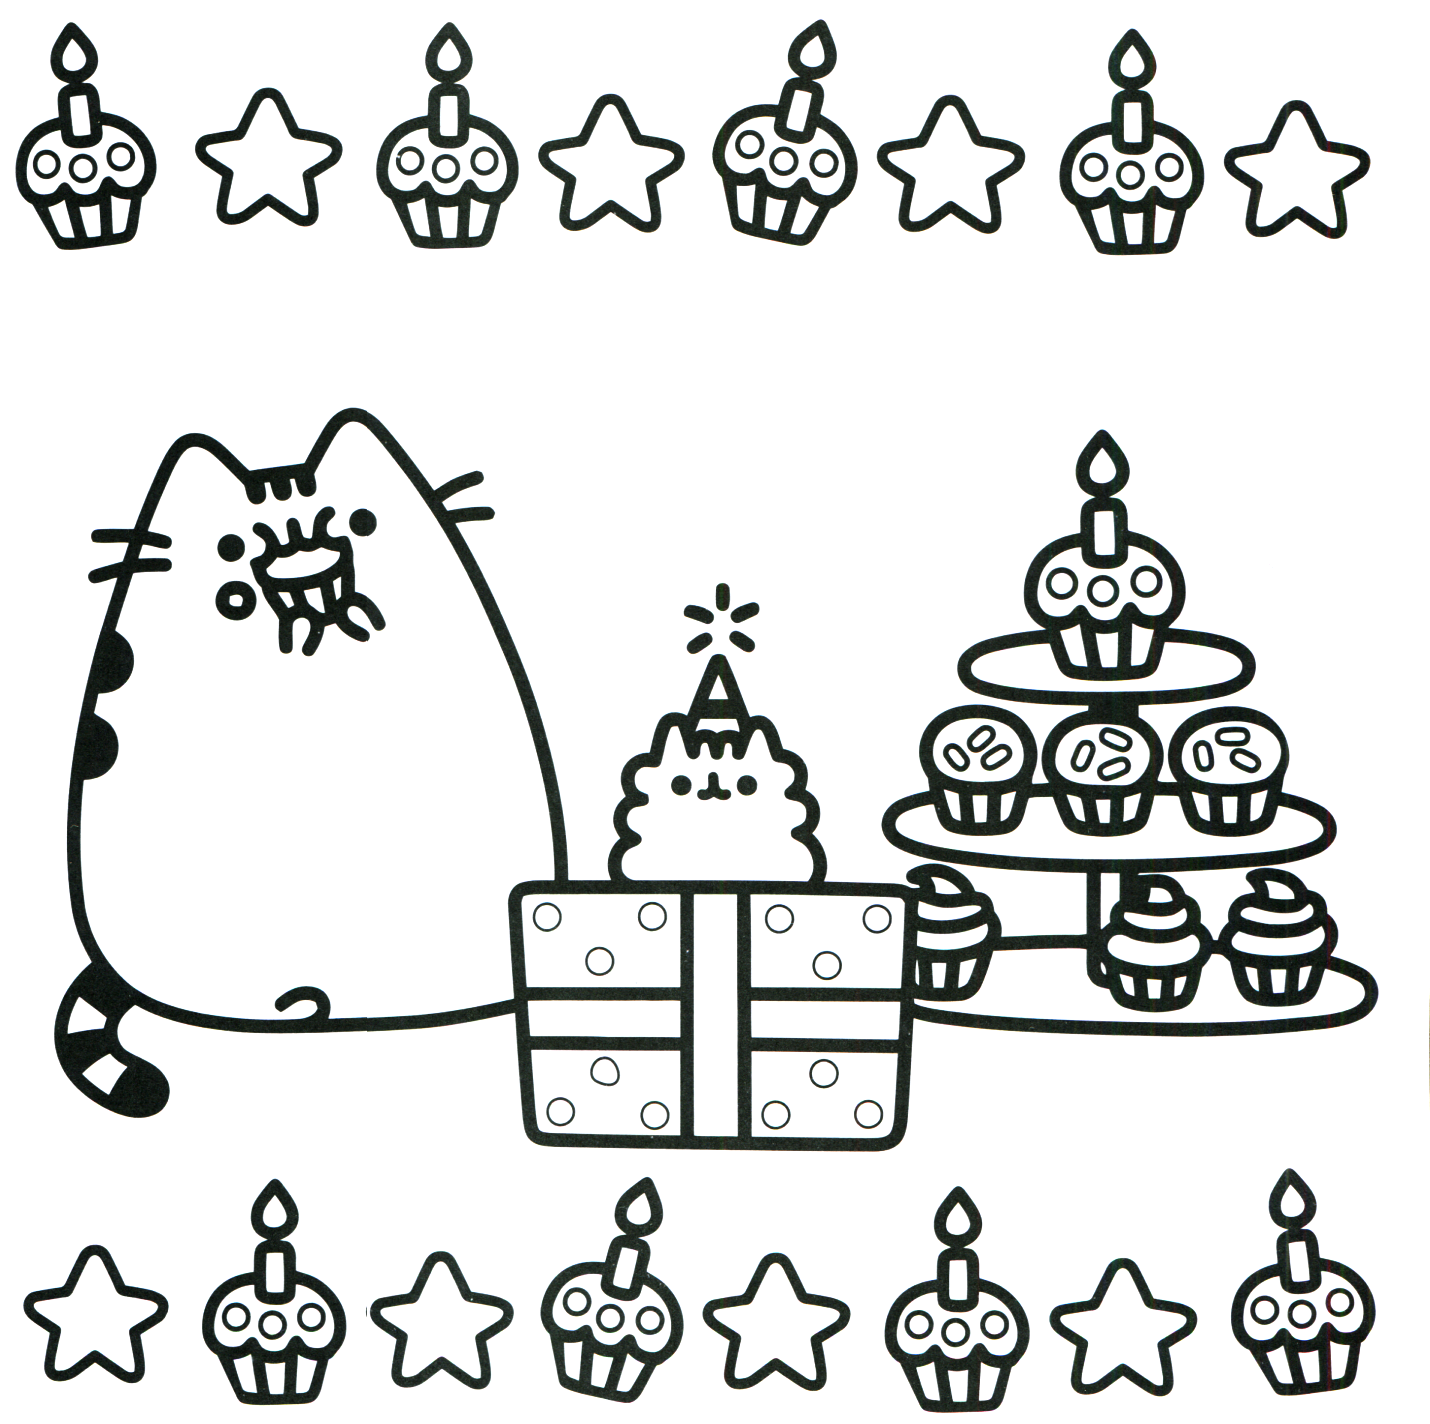 Pusheen Coloring Book Pusheen Pusheen The Cat Cat Coloring